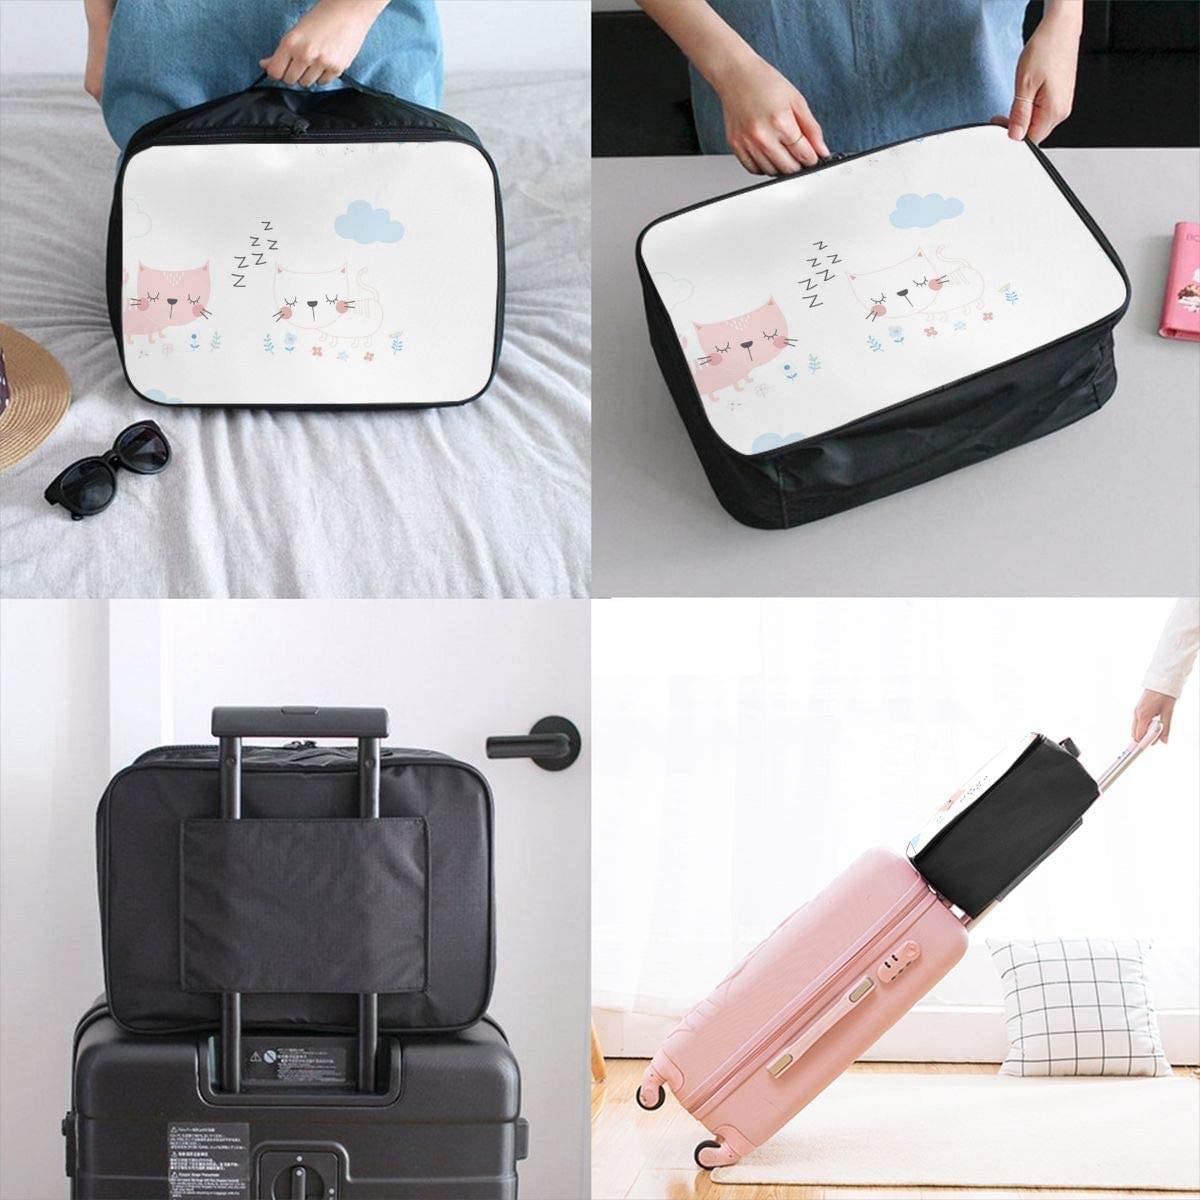 Yunshm White Kitten And Pink Kitten Are Sleeping Customized Trolley Handbag Waterproof Unisex Large Capacity For Business Travel Storage